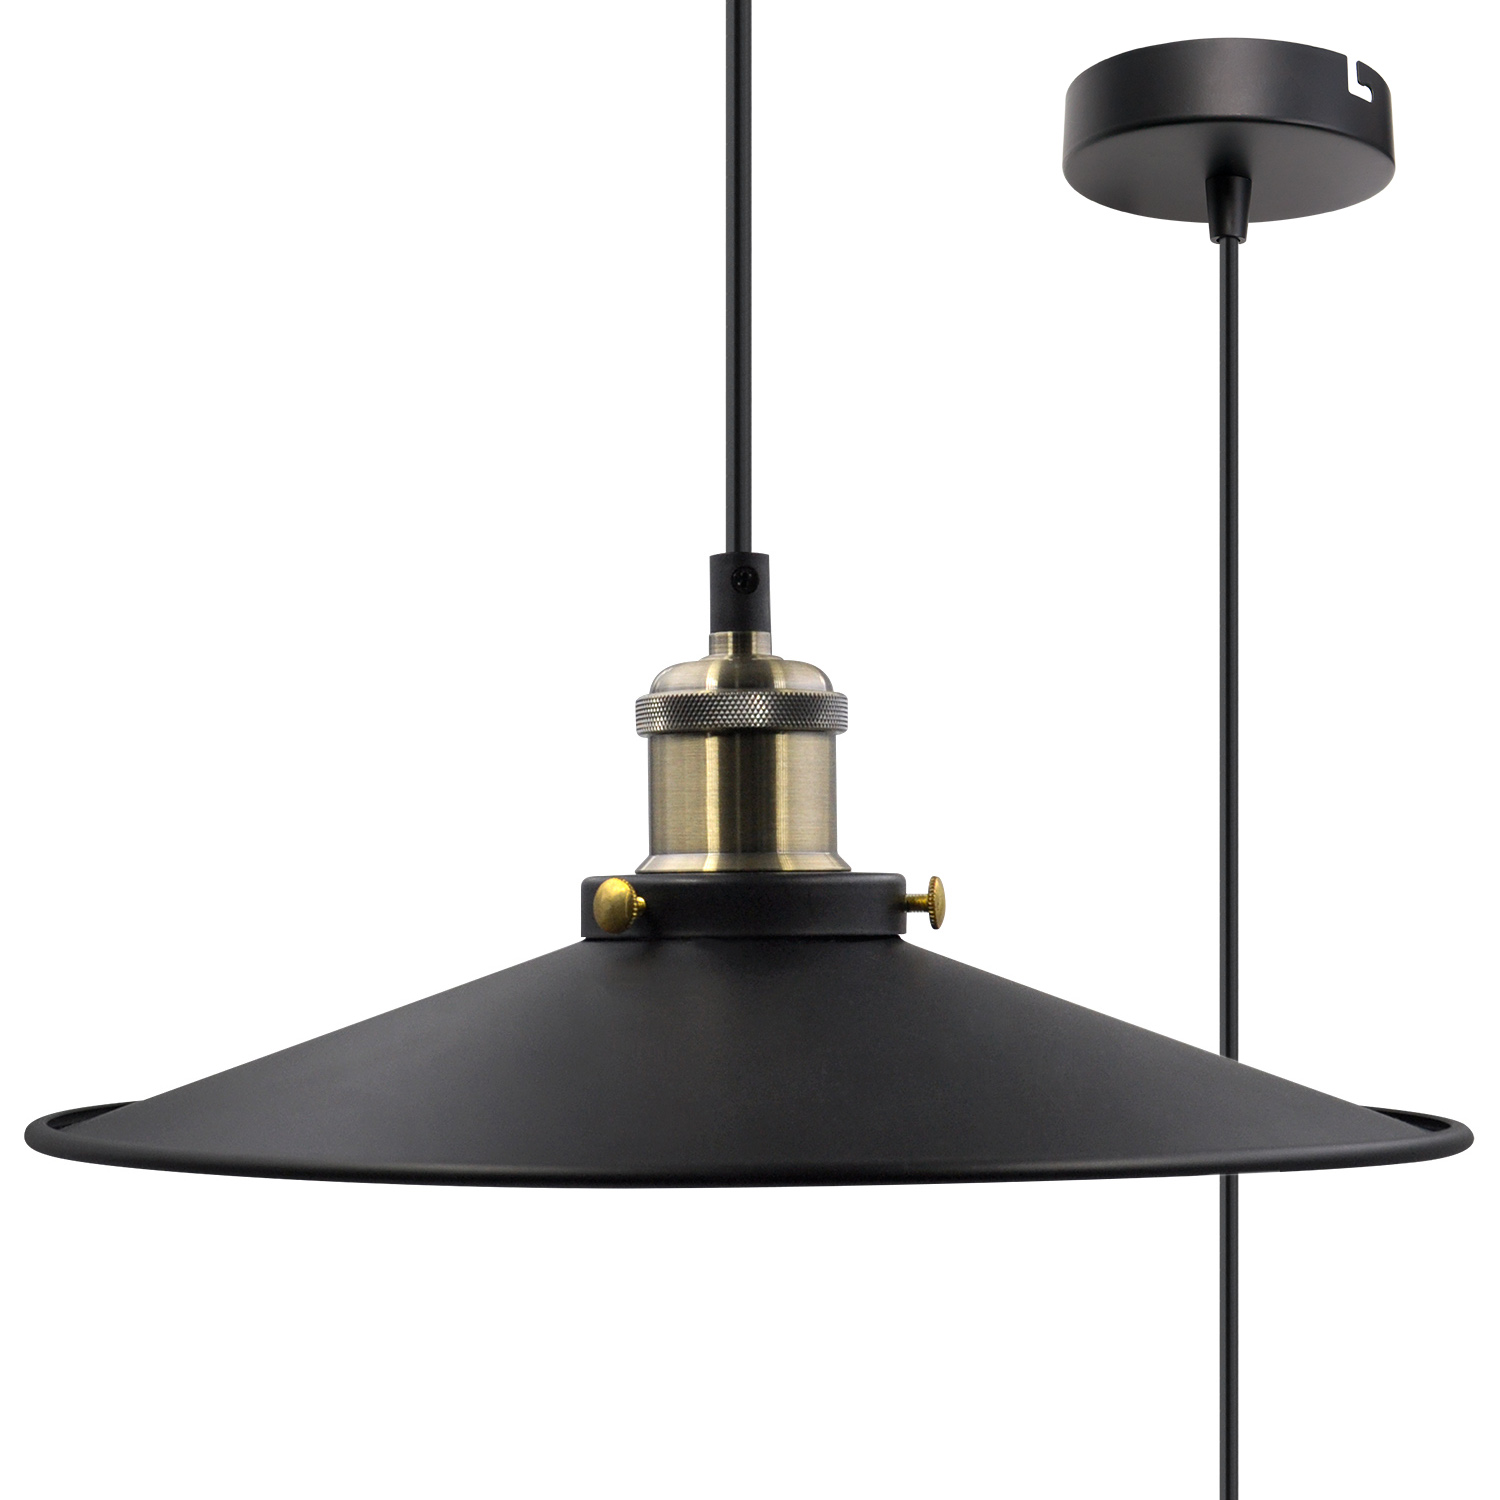 Ceiling Light Shades Black Pendant Light Shade Vintage Metal Ceiling Hanging Lamp Shade Pendant Light Fixture For Kitchen Dining Room Restaurant Maximum 2 Meters